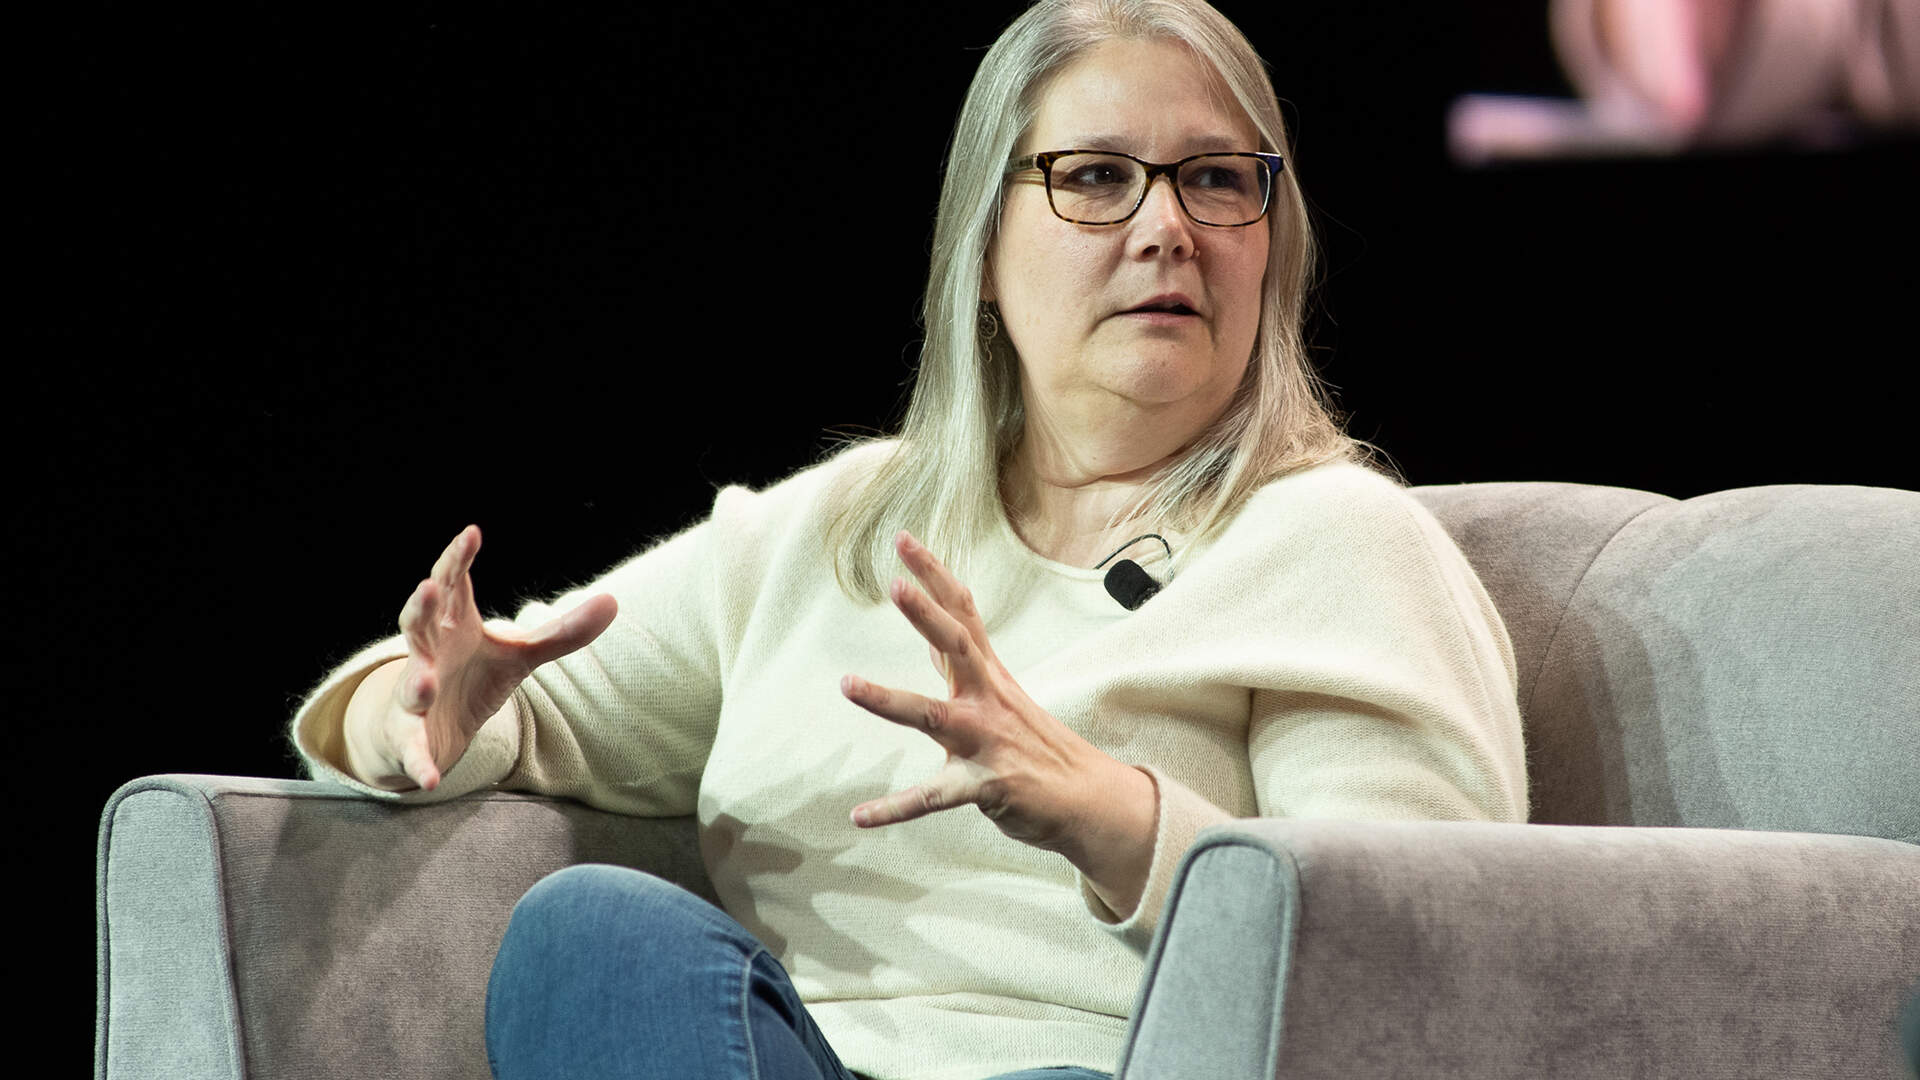 The Amy Hennig Interview: On What Changed With Uncharted 4, Leaving EA, and What's Next